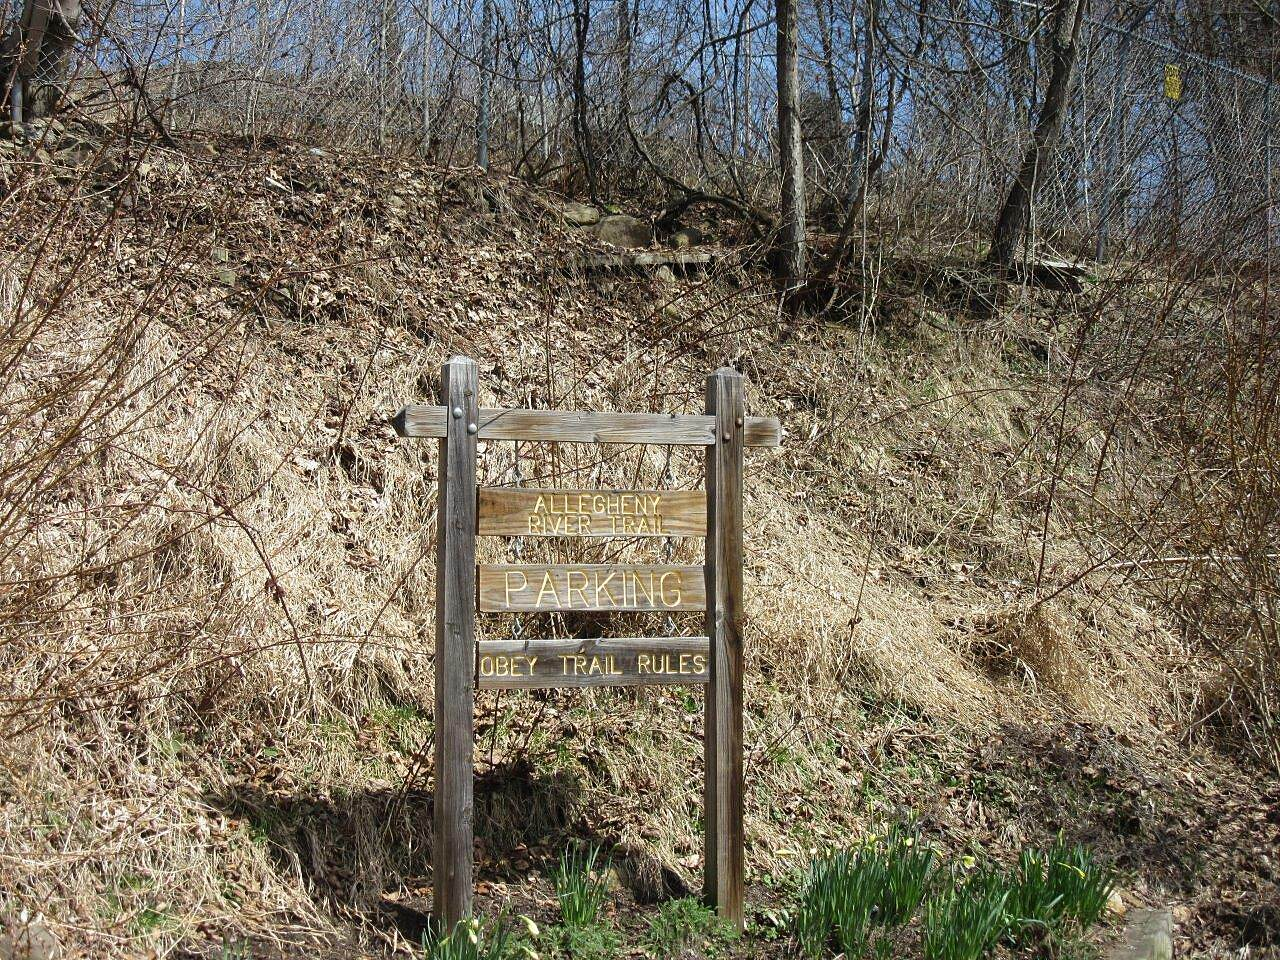 Allegheny River Trail Emlenton Parking Emlenton Parking area-April 2015